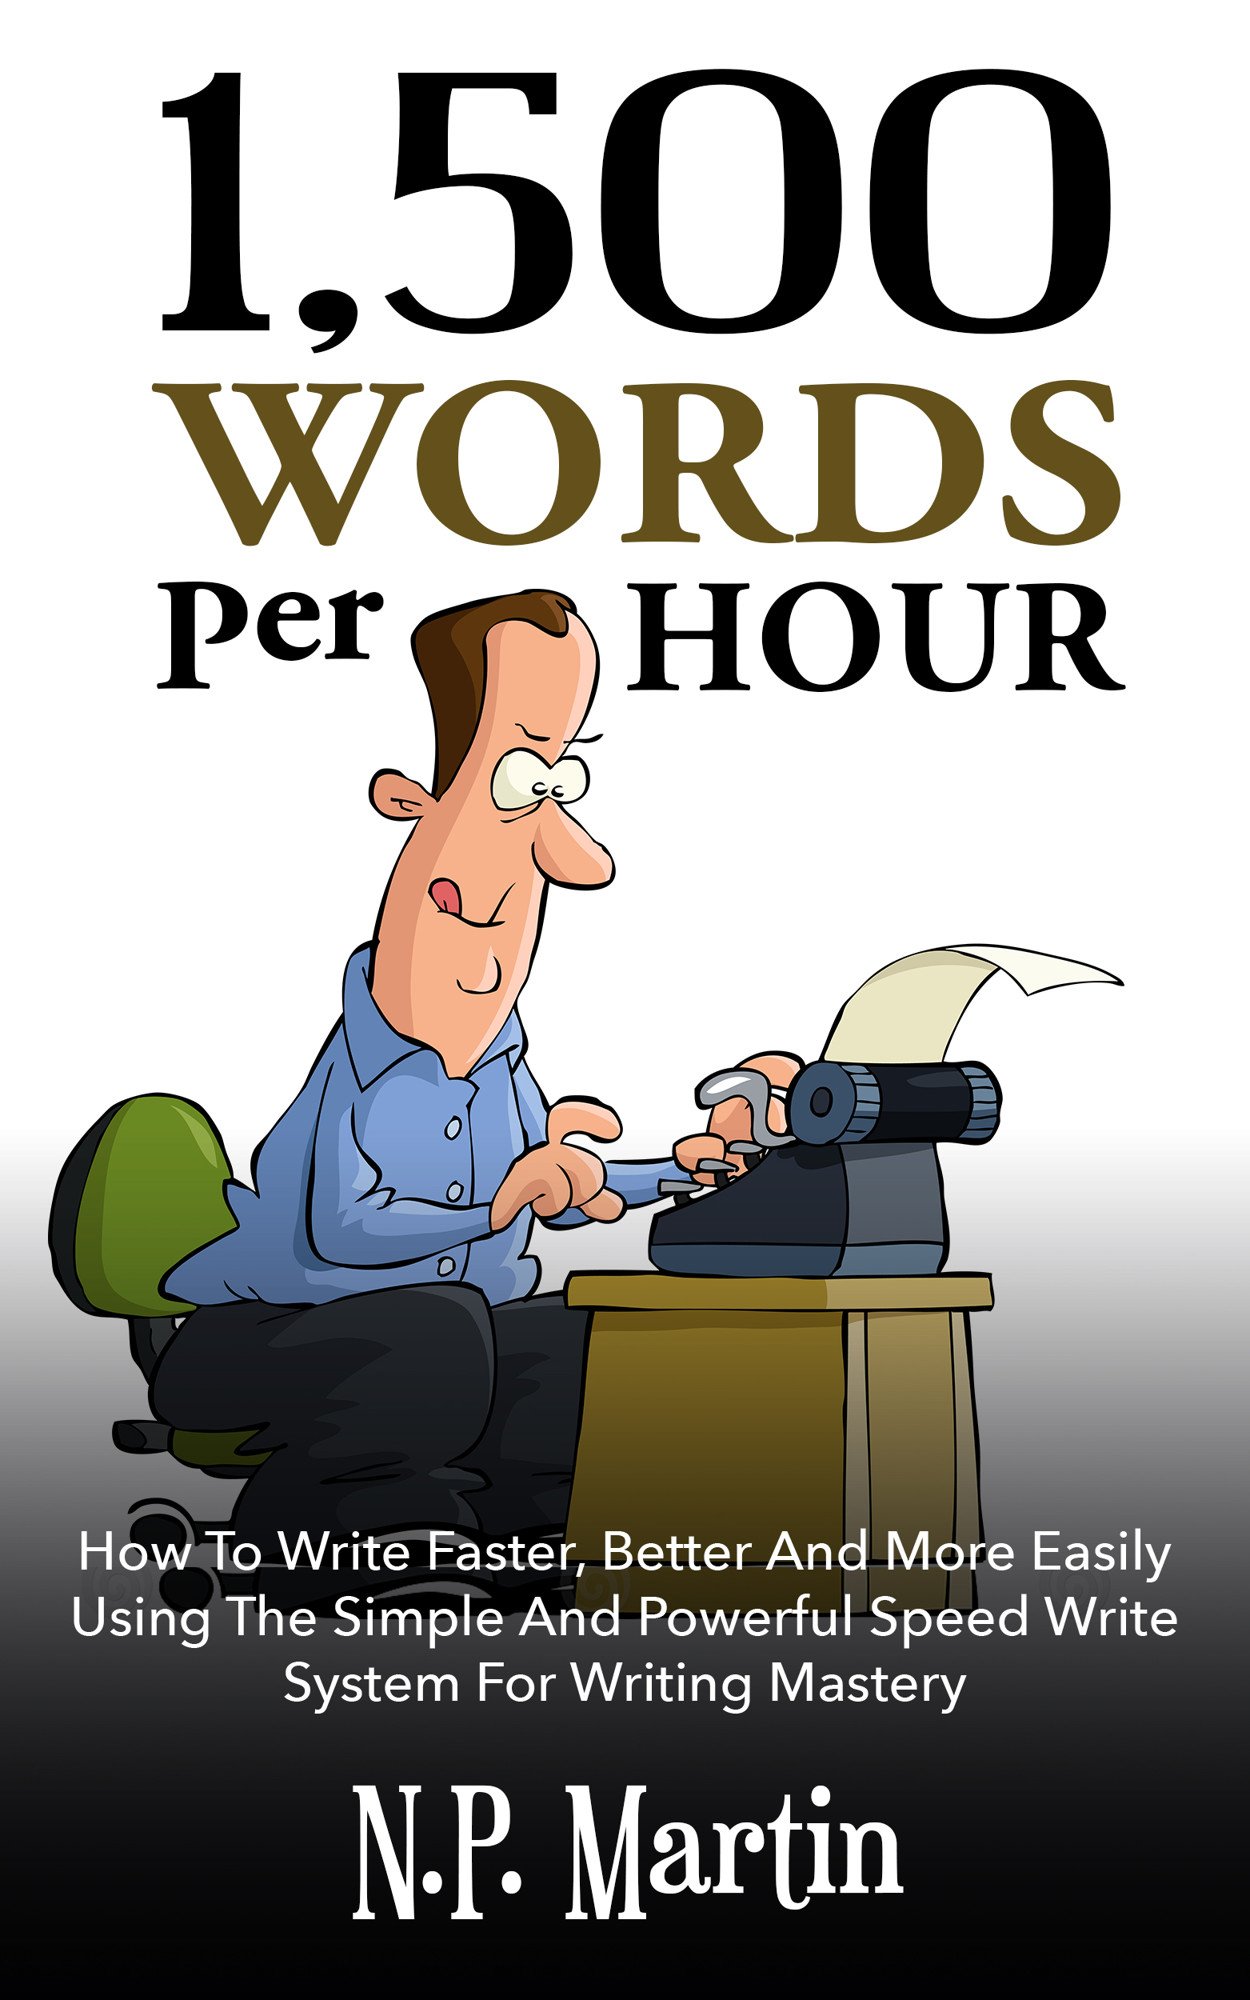 1500 words per hour: how to write faster, better and more easily